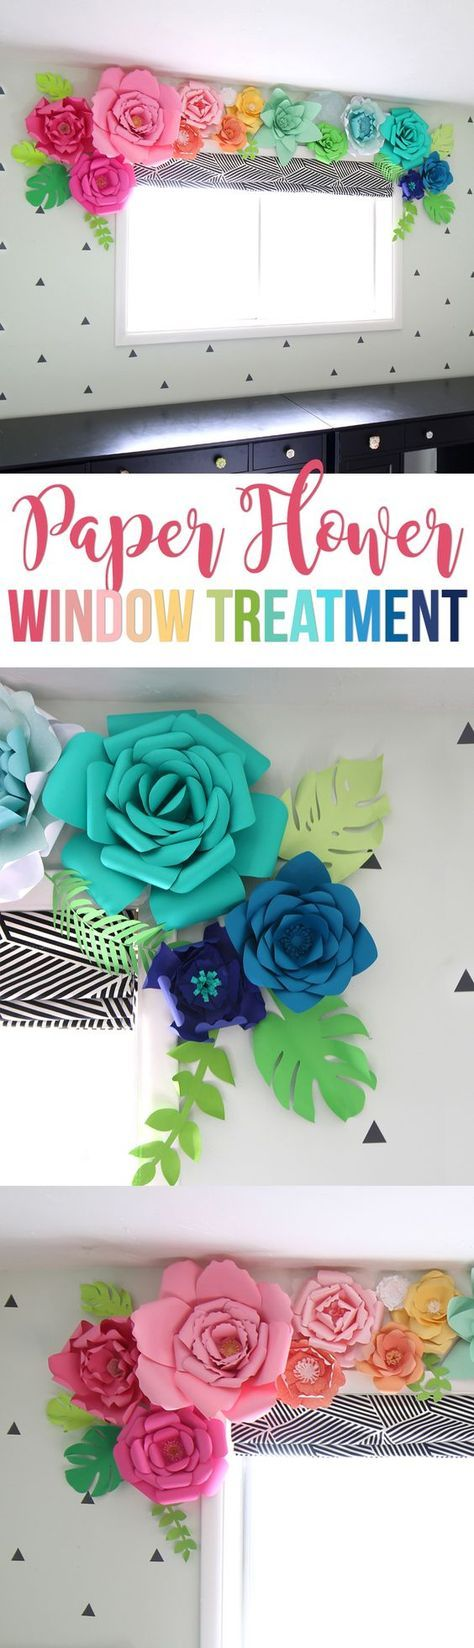 3D Paper Flower Window Treatment.